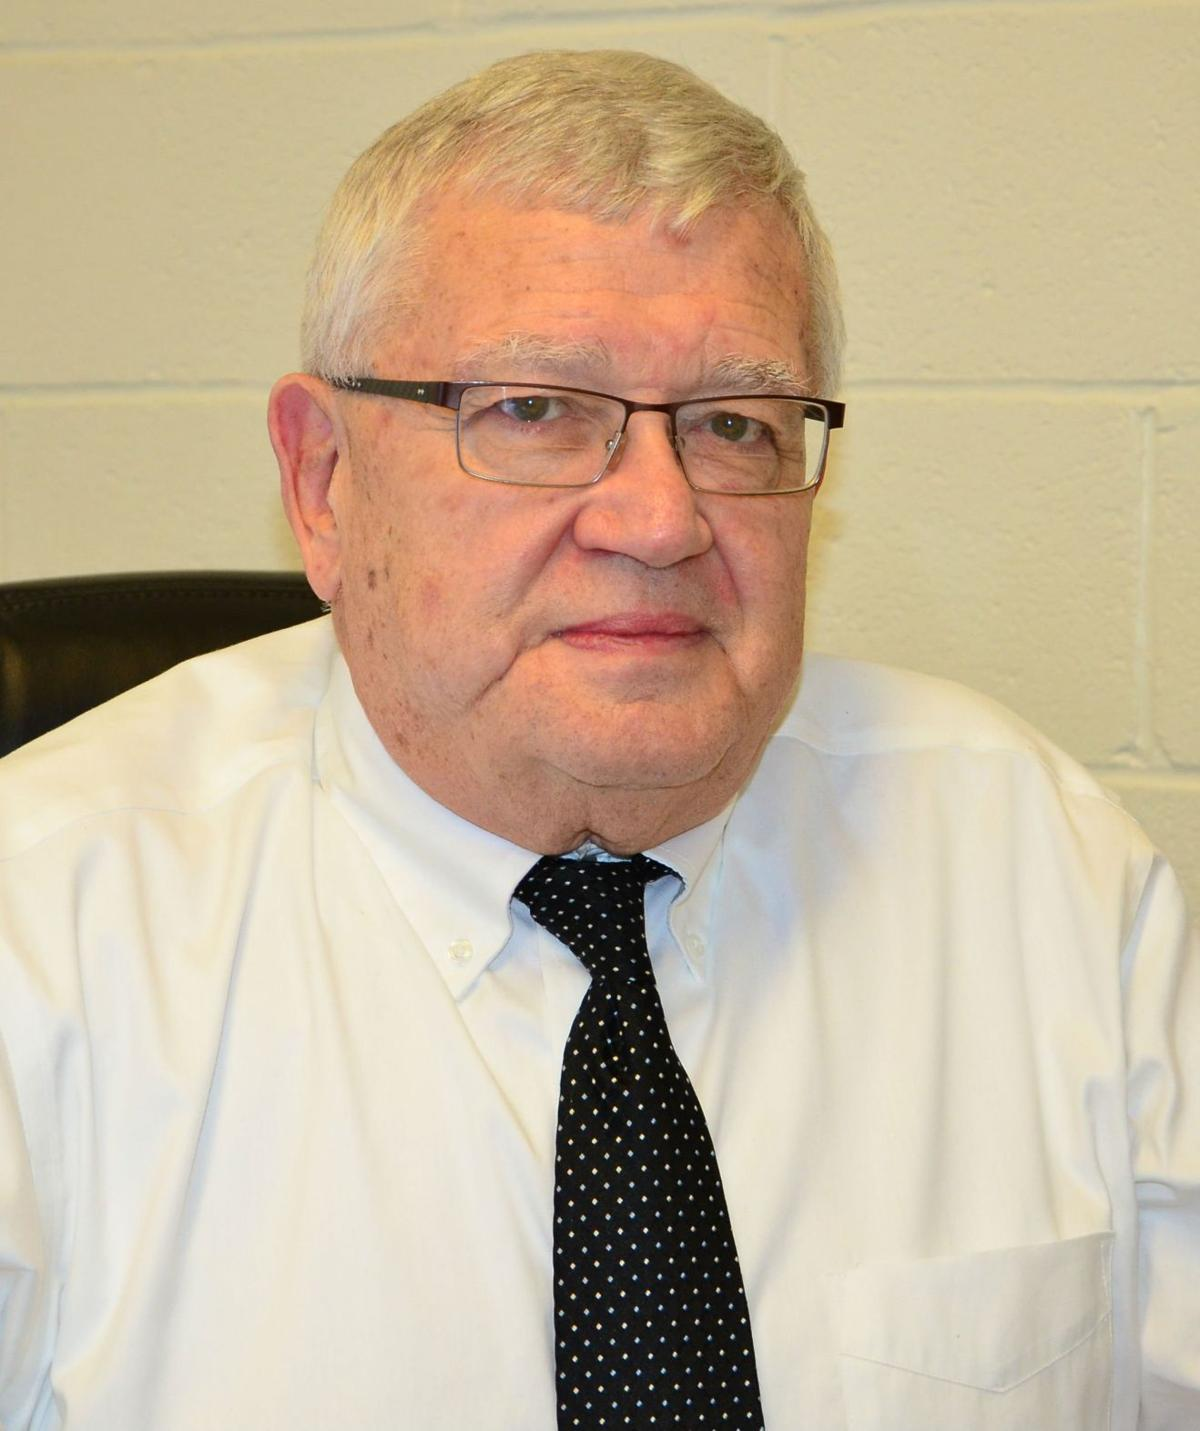 Hyndman-Londonderry homecoming will be held Oct. 1